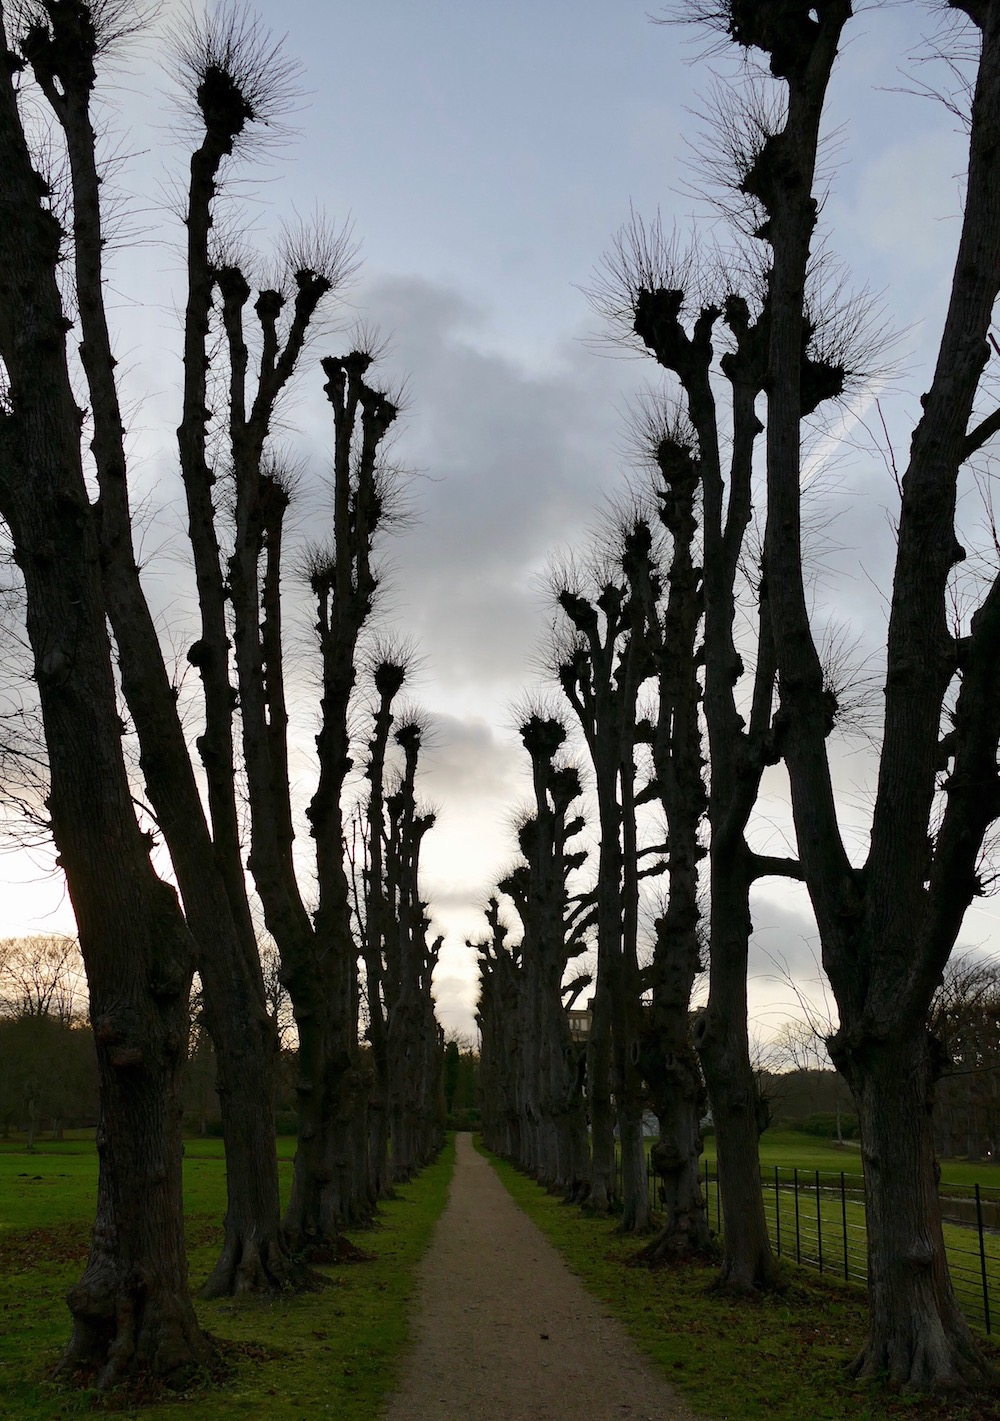 Tree-lined path at Elswout |curlytraveller.com